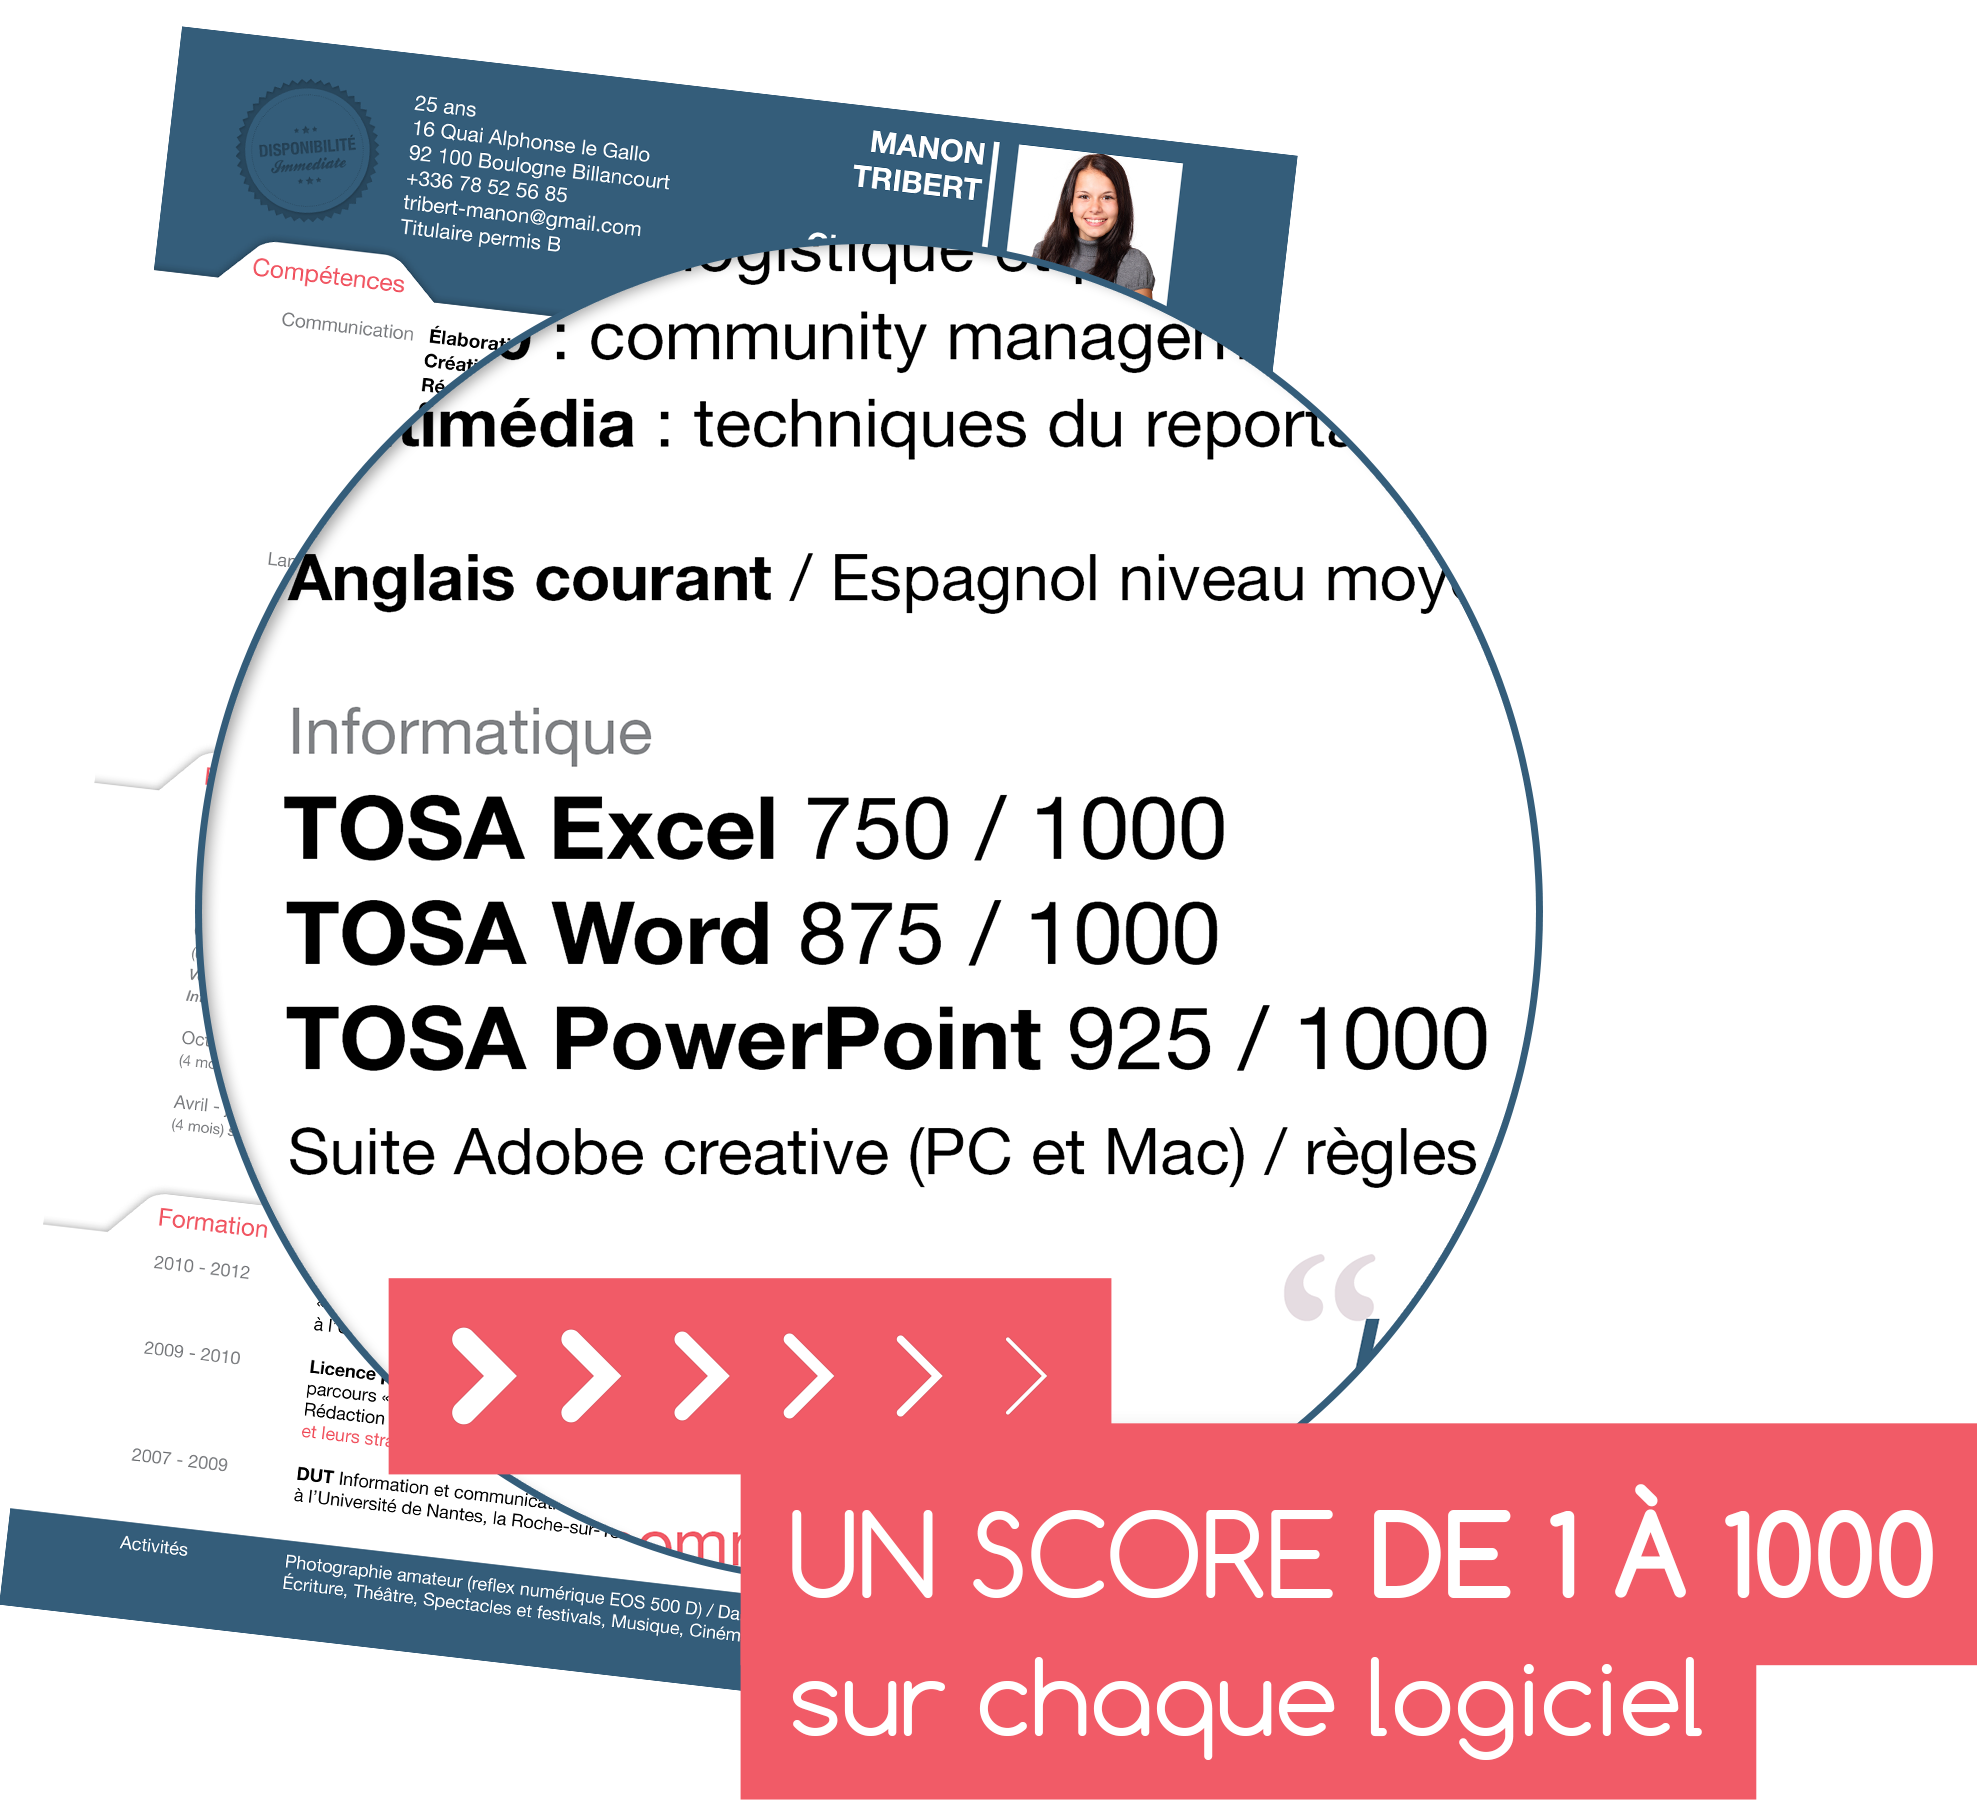 image TOSA